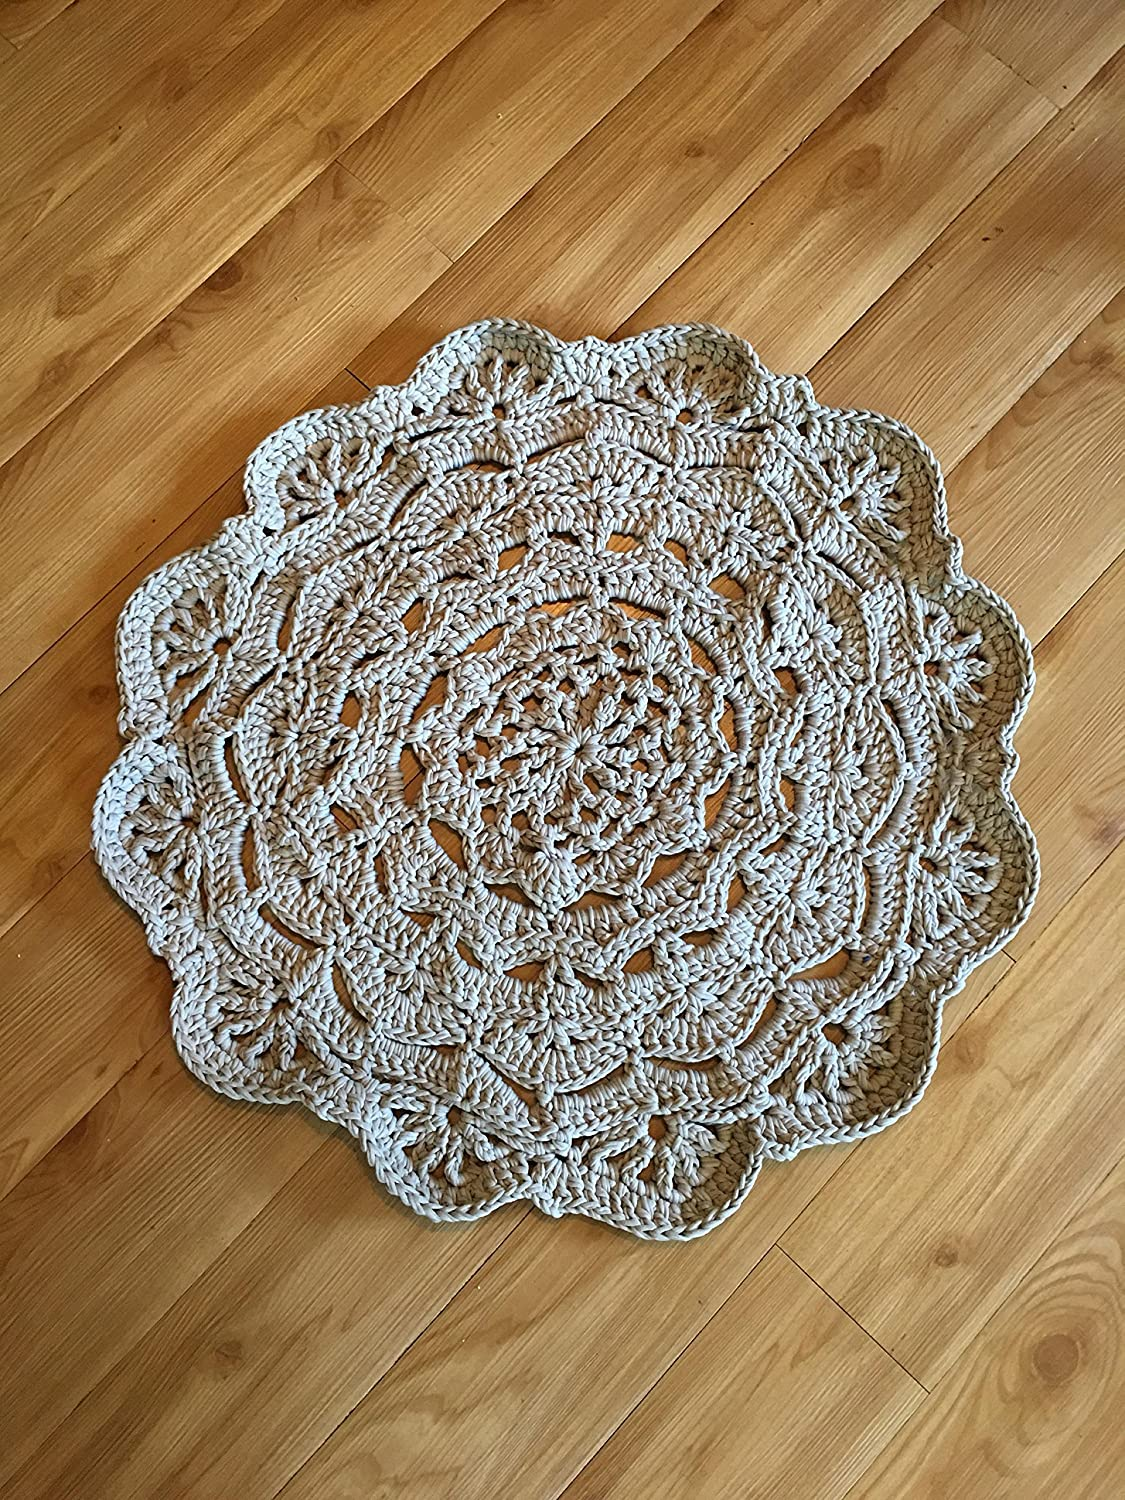 Amazon Kays Crochet Giant Doily Rug In Grey Cottage Chic Rug